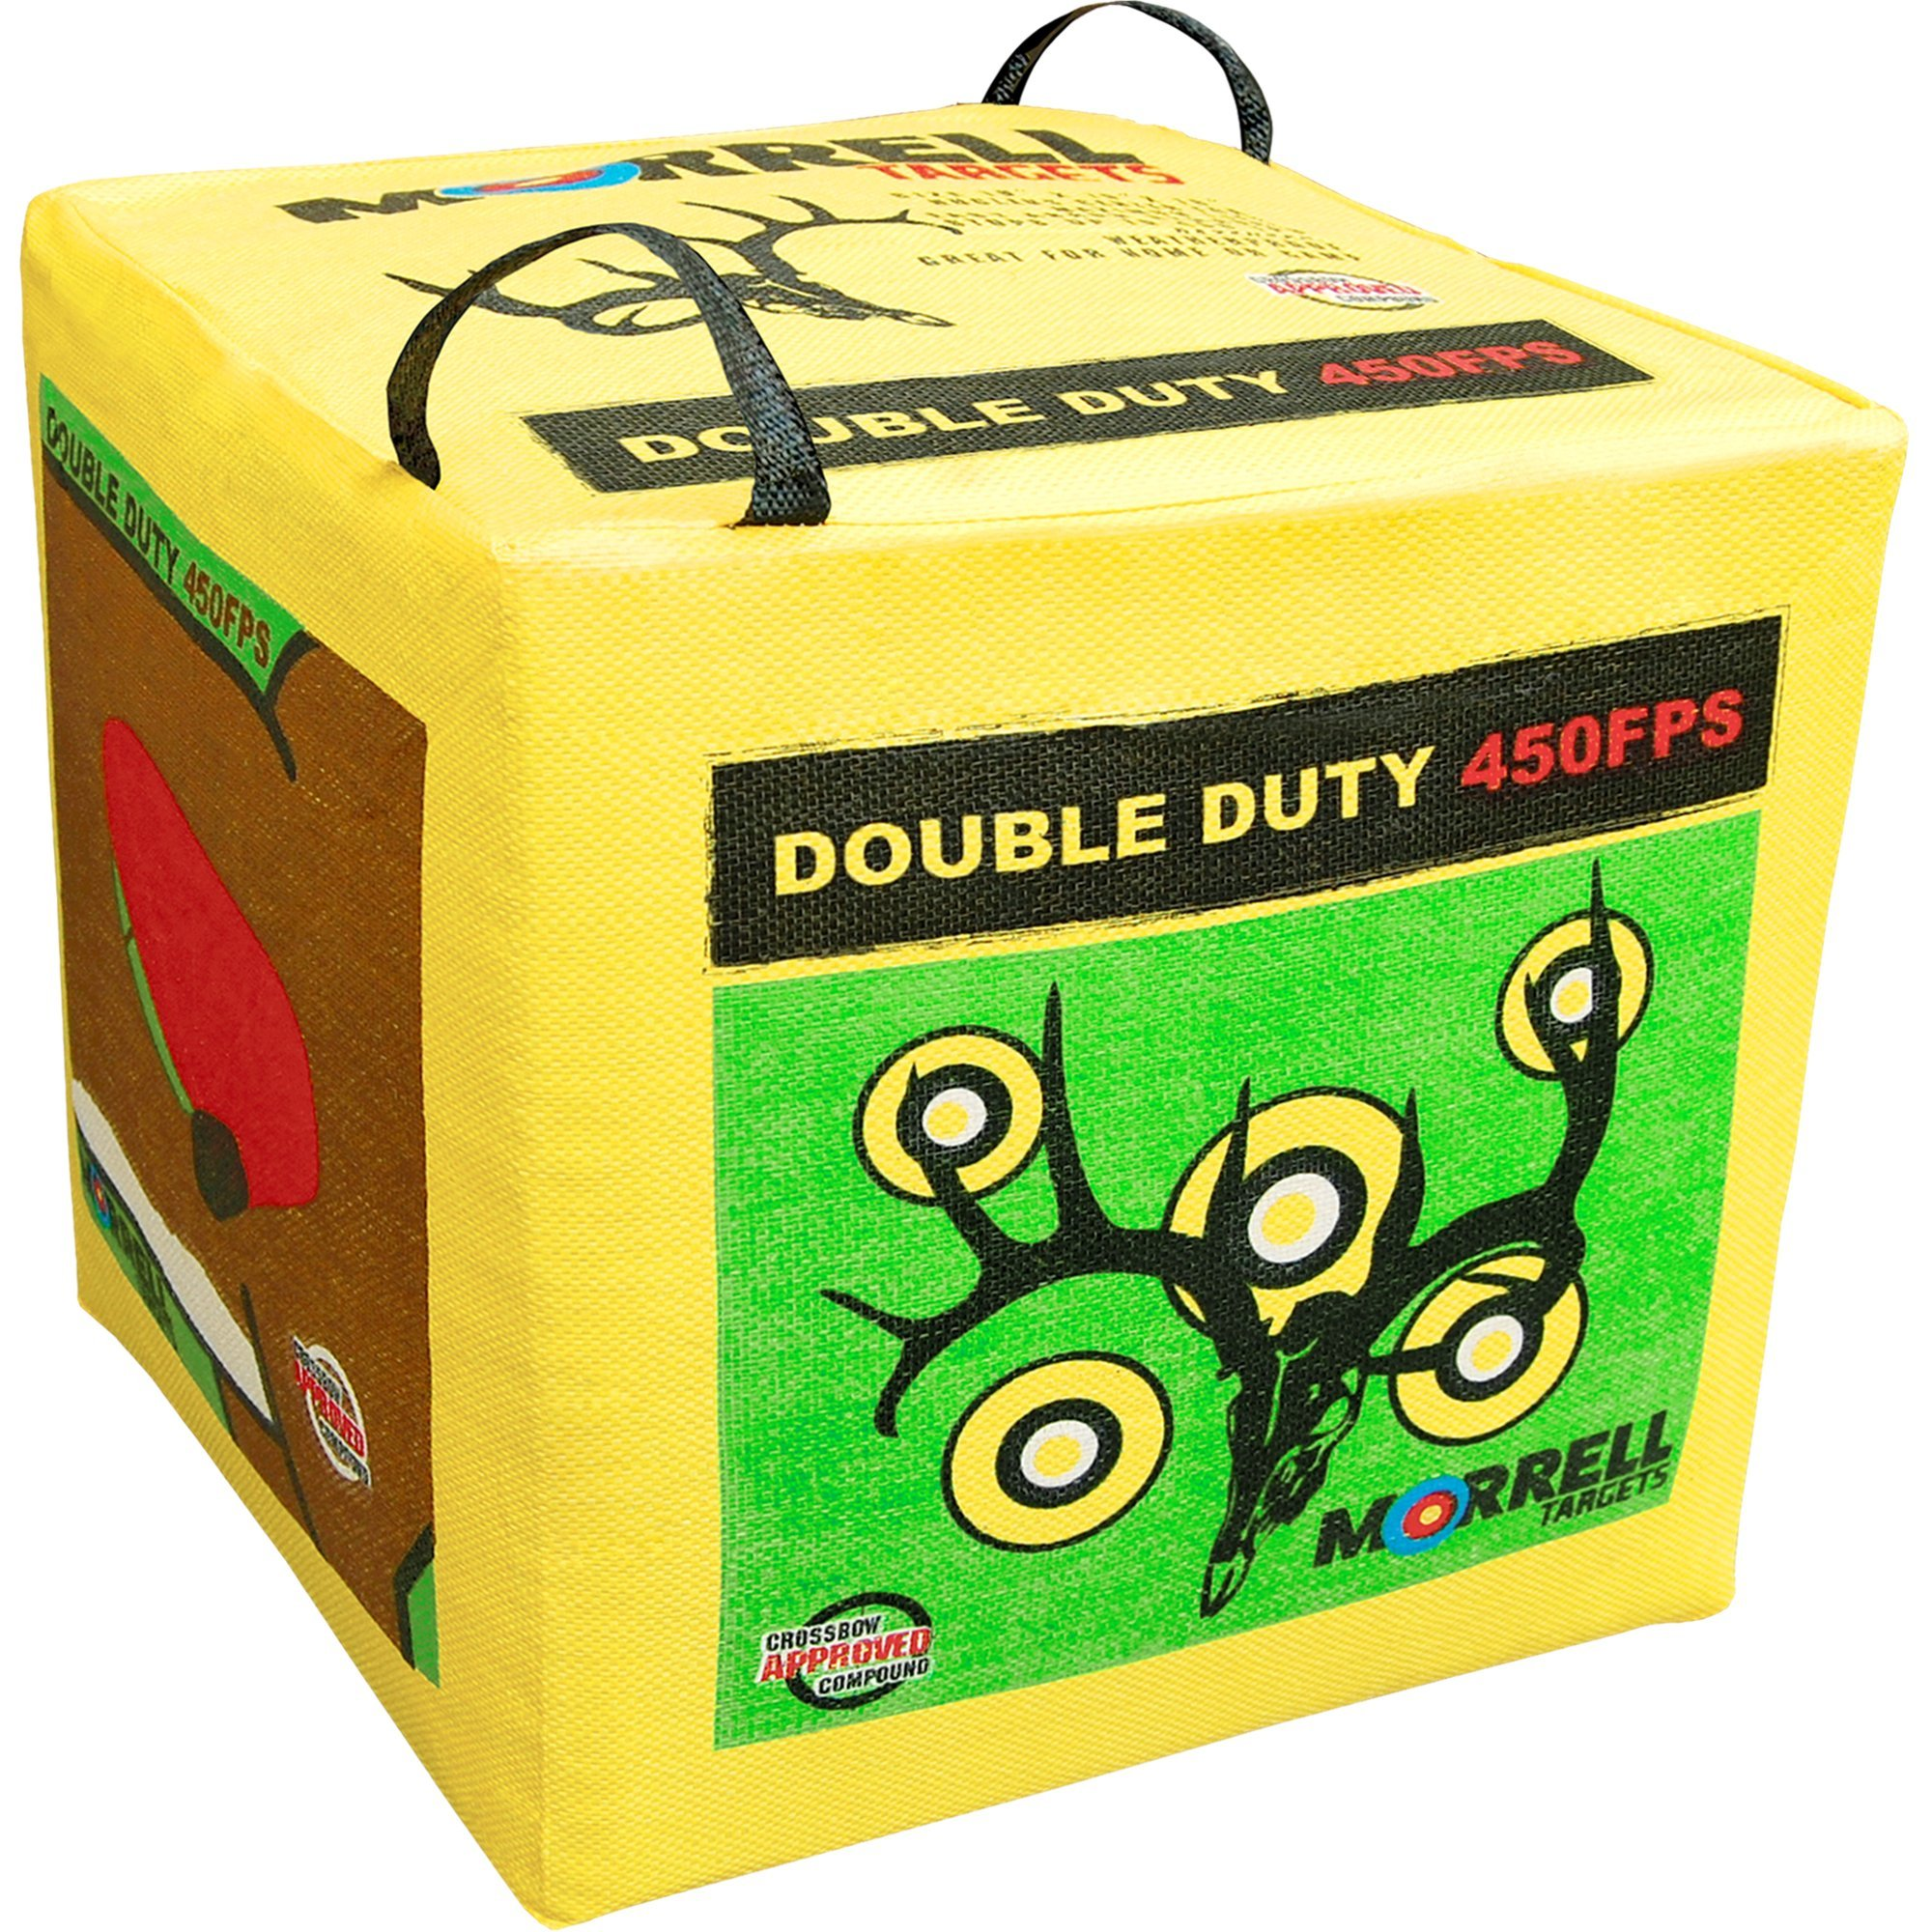 Morrell Double Duty 450FPS Field Point Bag Archery Target - for Crossbows, Compounds, Traditional Bows and Airbows by Morrell